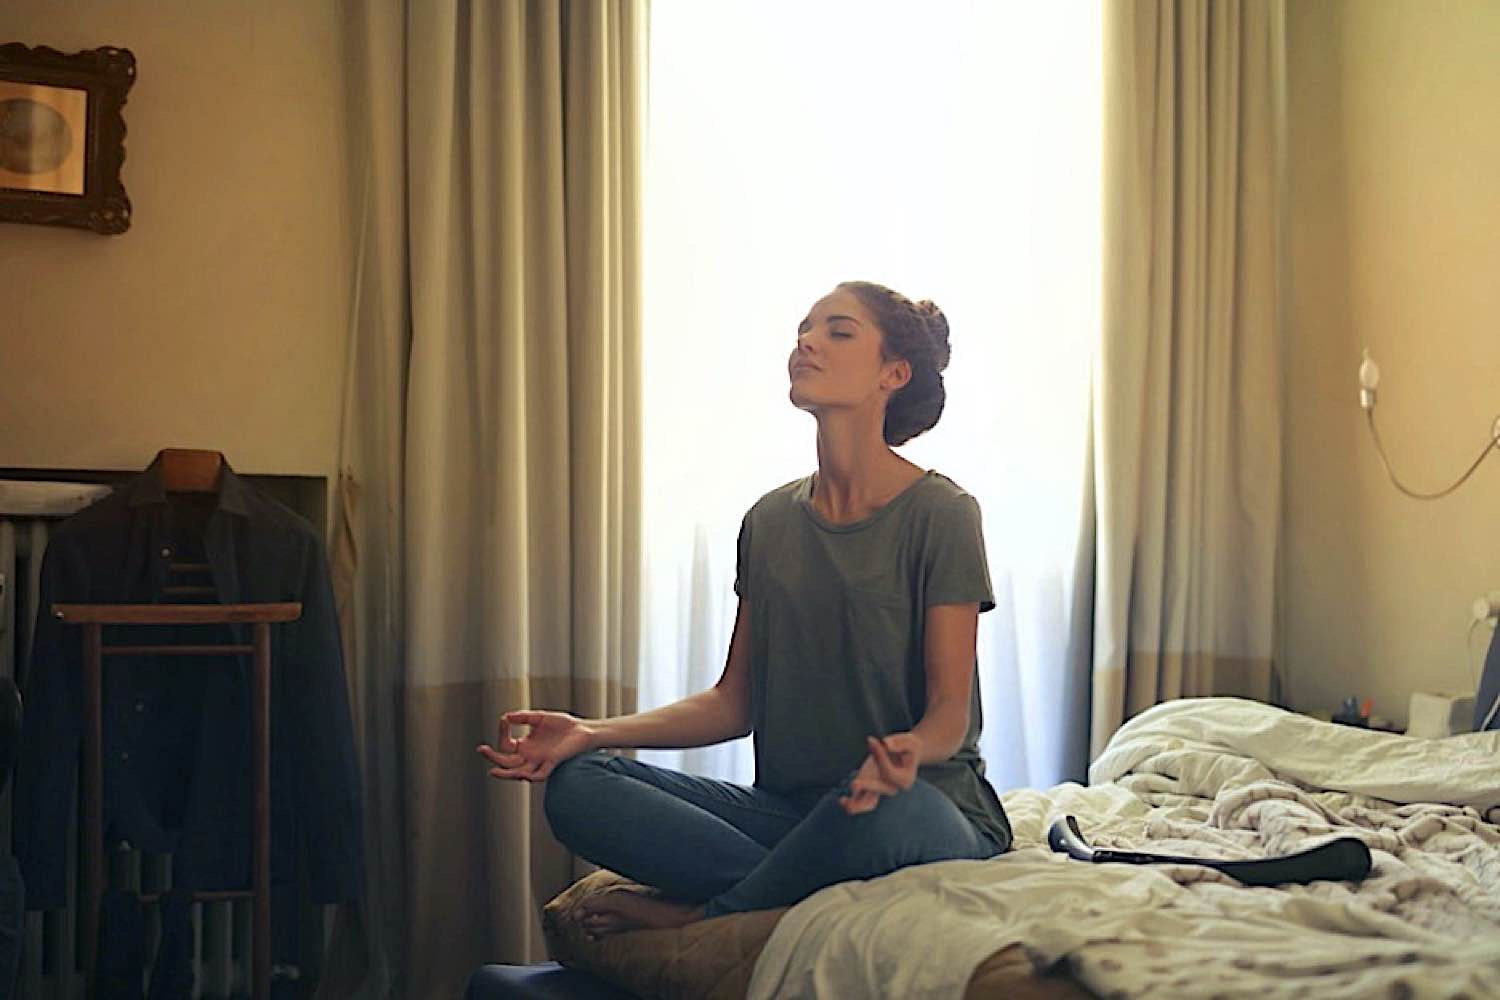 You can meditate anywhere, anytime.